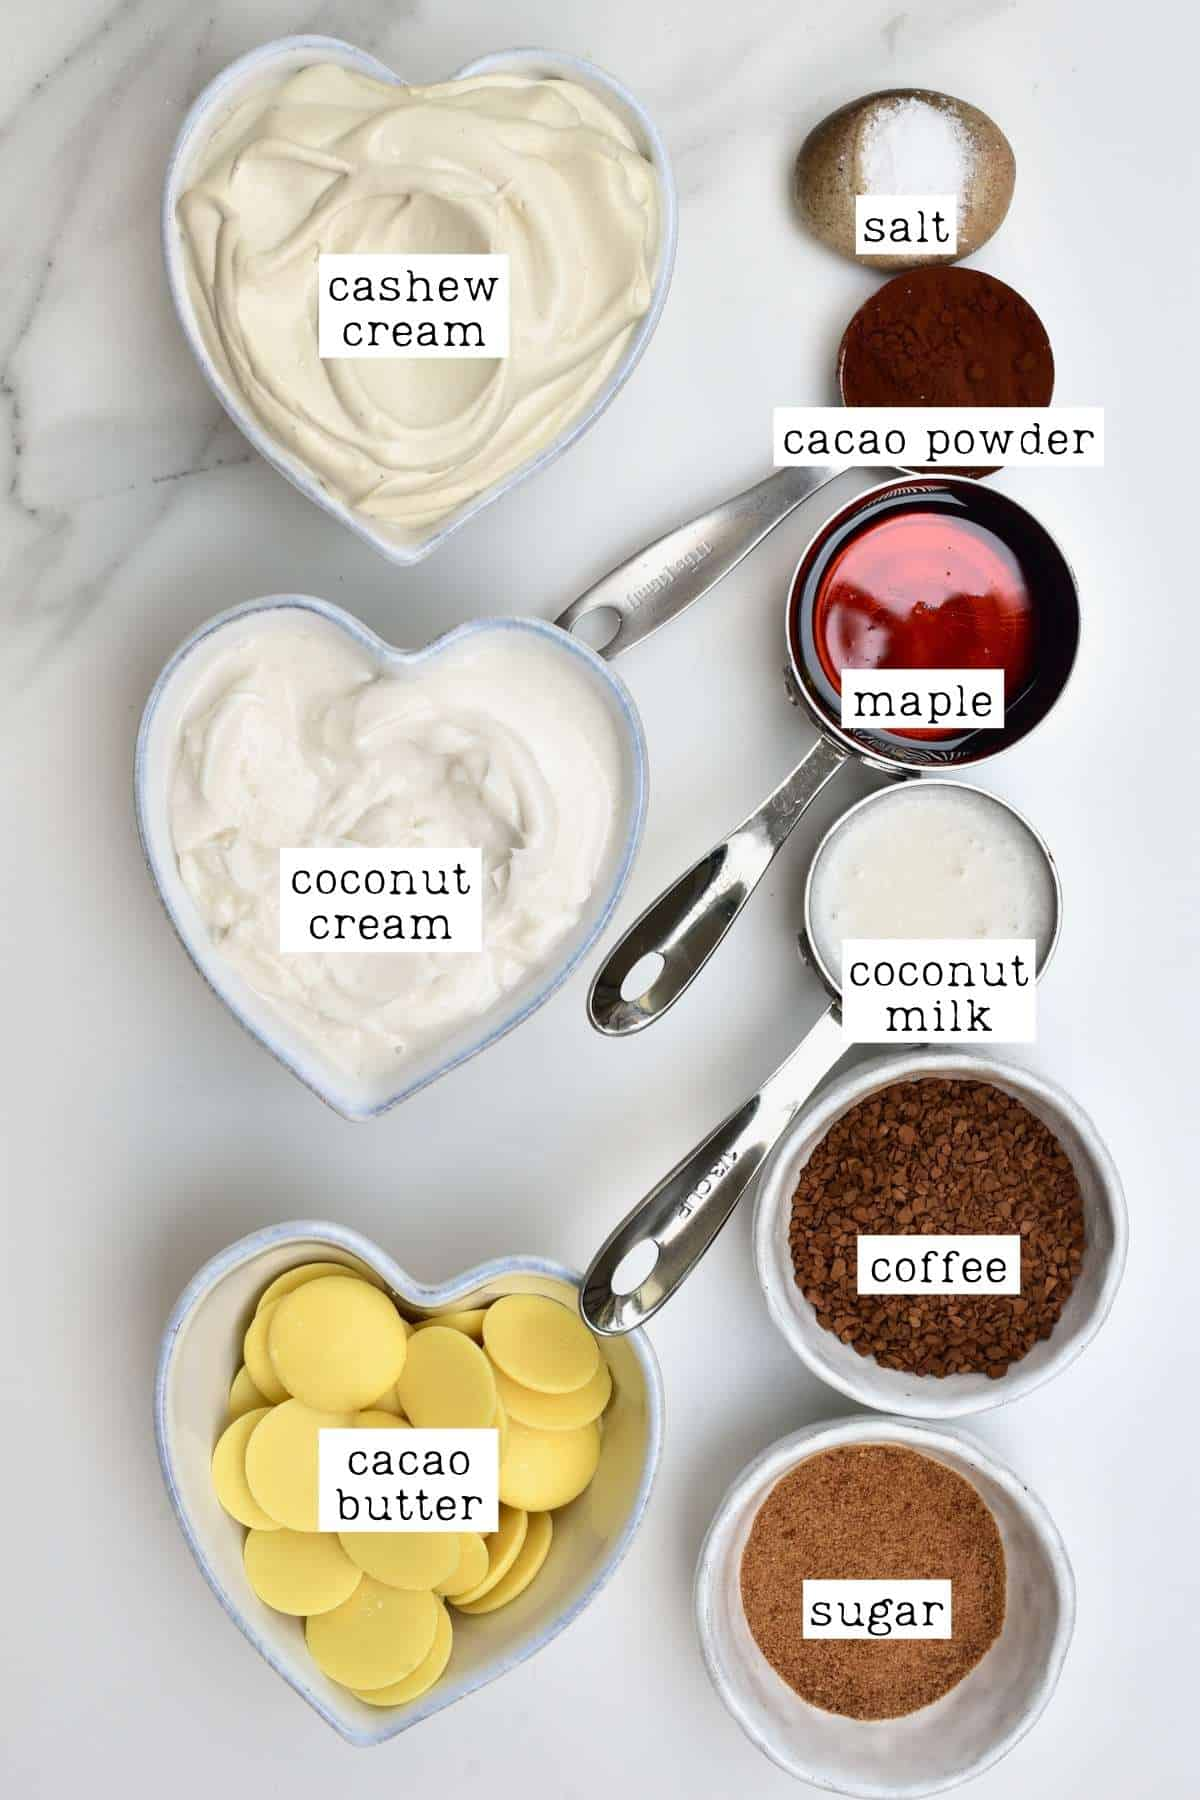 Ingredients for coffee ice cream